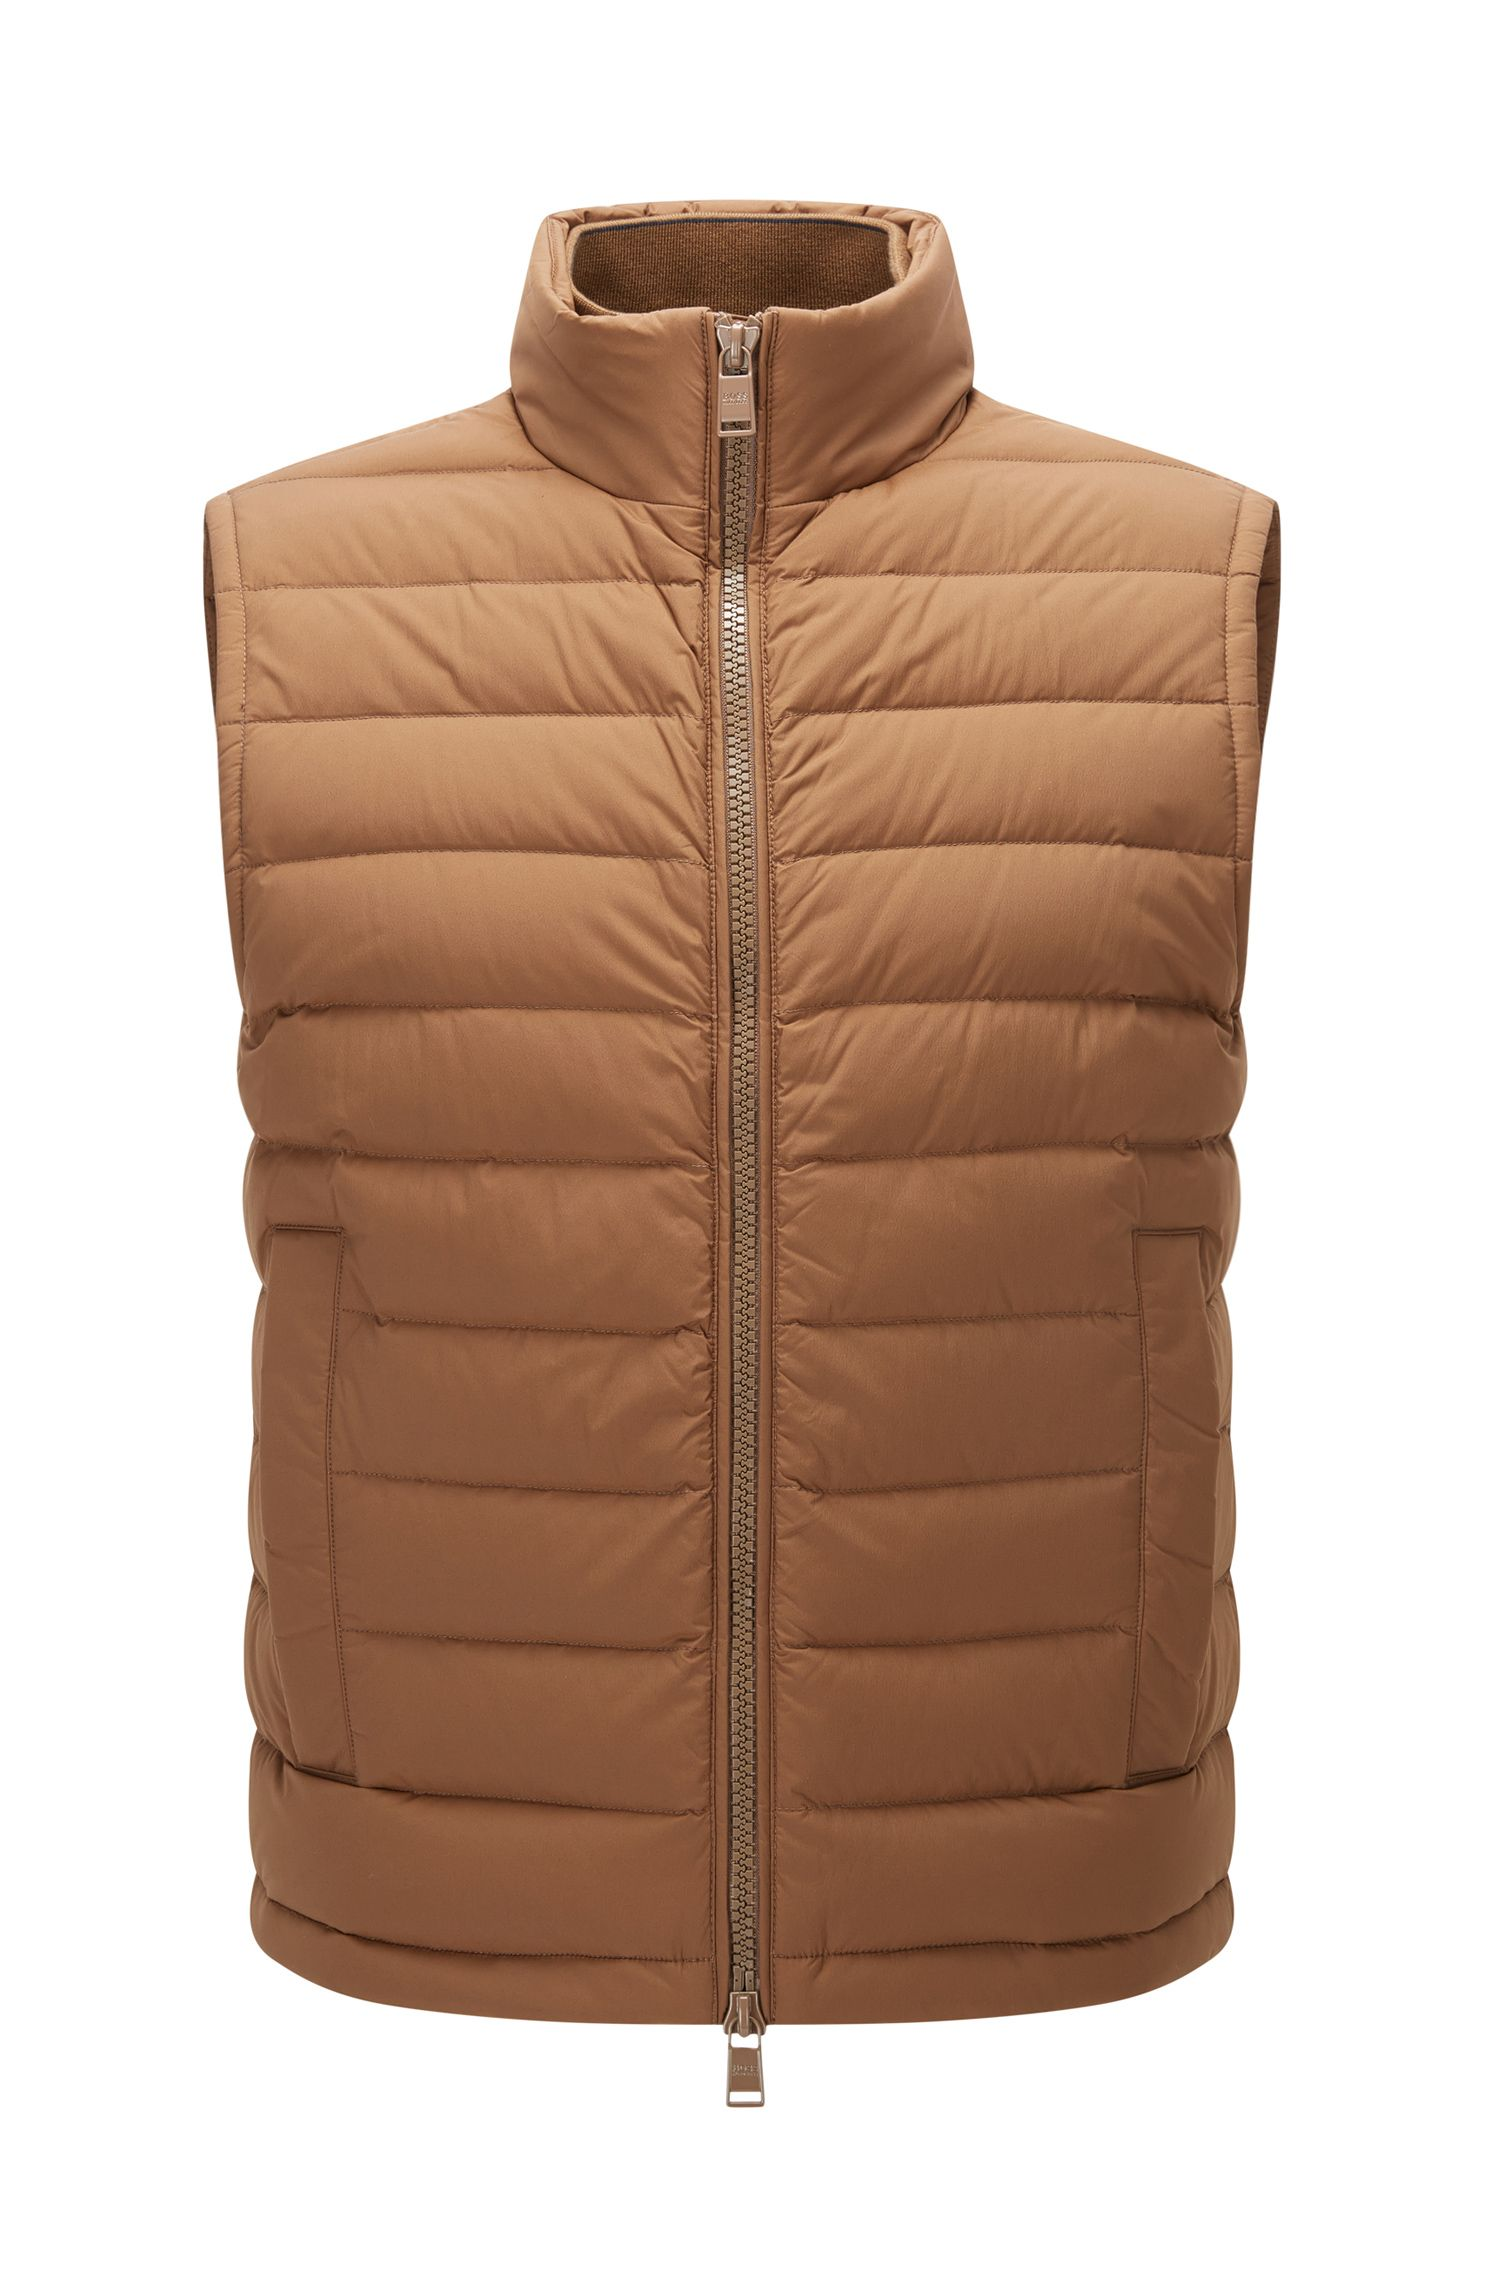 Regular-fit gilet in water-repellant stretch fabric